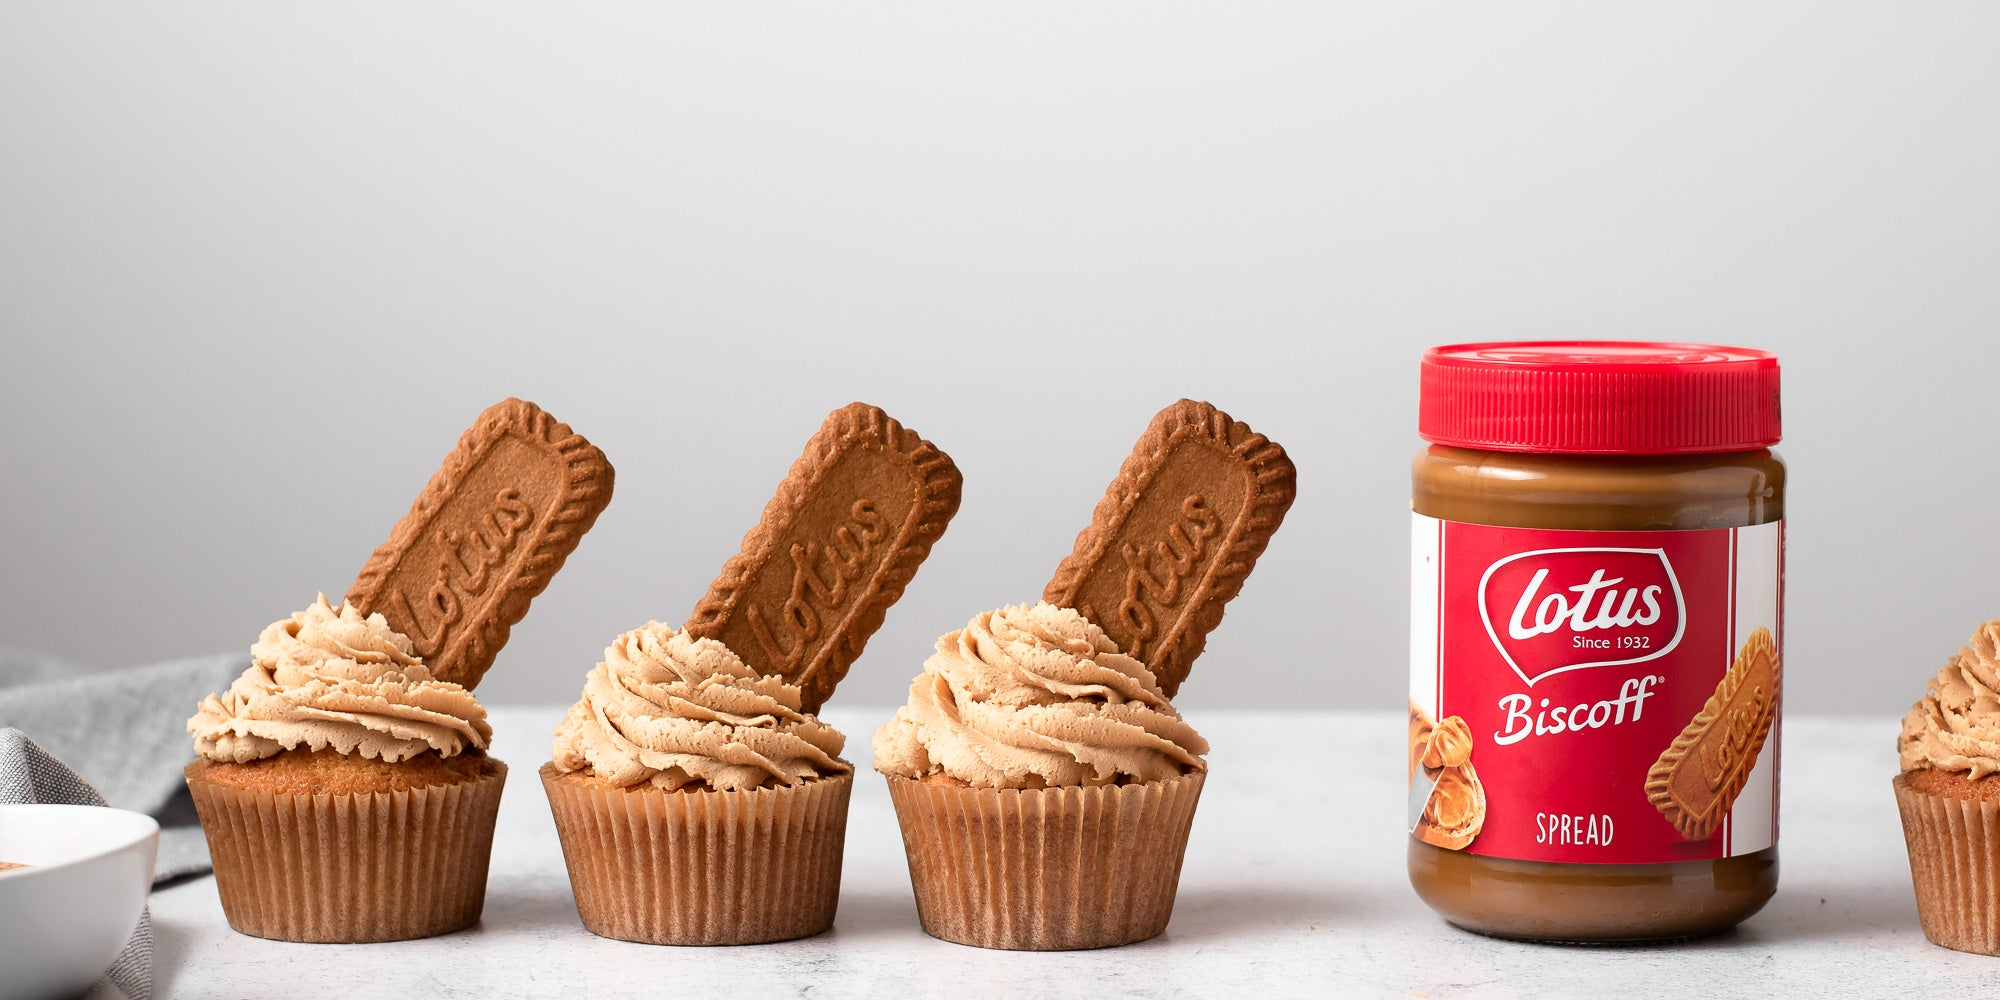 four Biscoff cupcakes next to jar of Lotus Biscoff spread